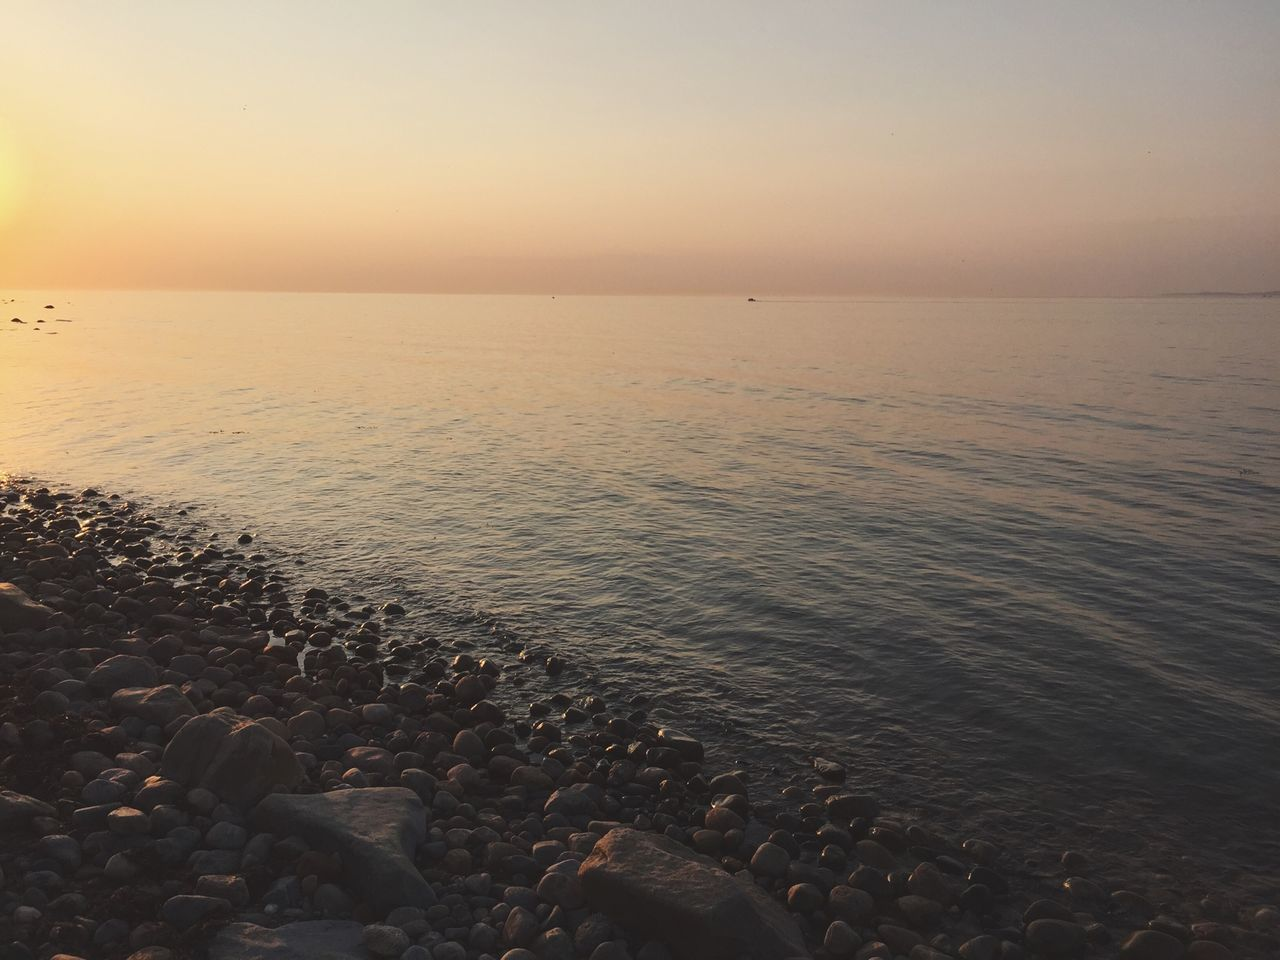 sea, beach, water, nature, tranquil scene, beauty in nature, tranquility, scenics, sunset, shore, horizon over water, pebble, outdoors, idyllic, pebble beach, sand, no people, sky, day, clear sky